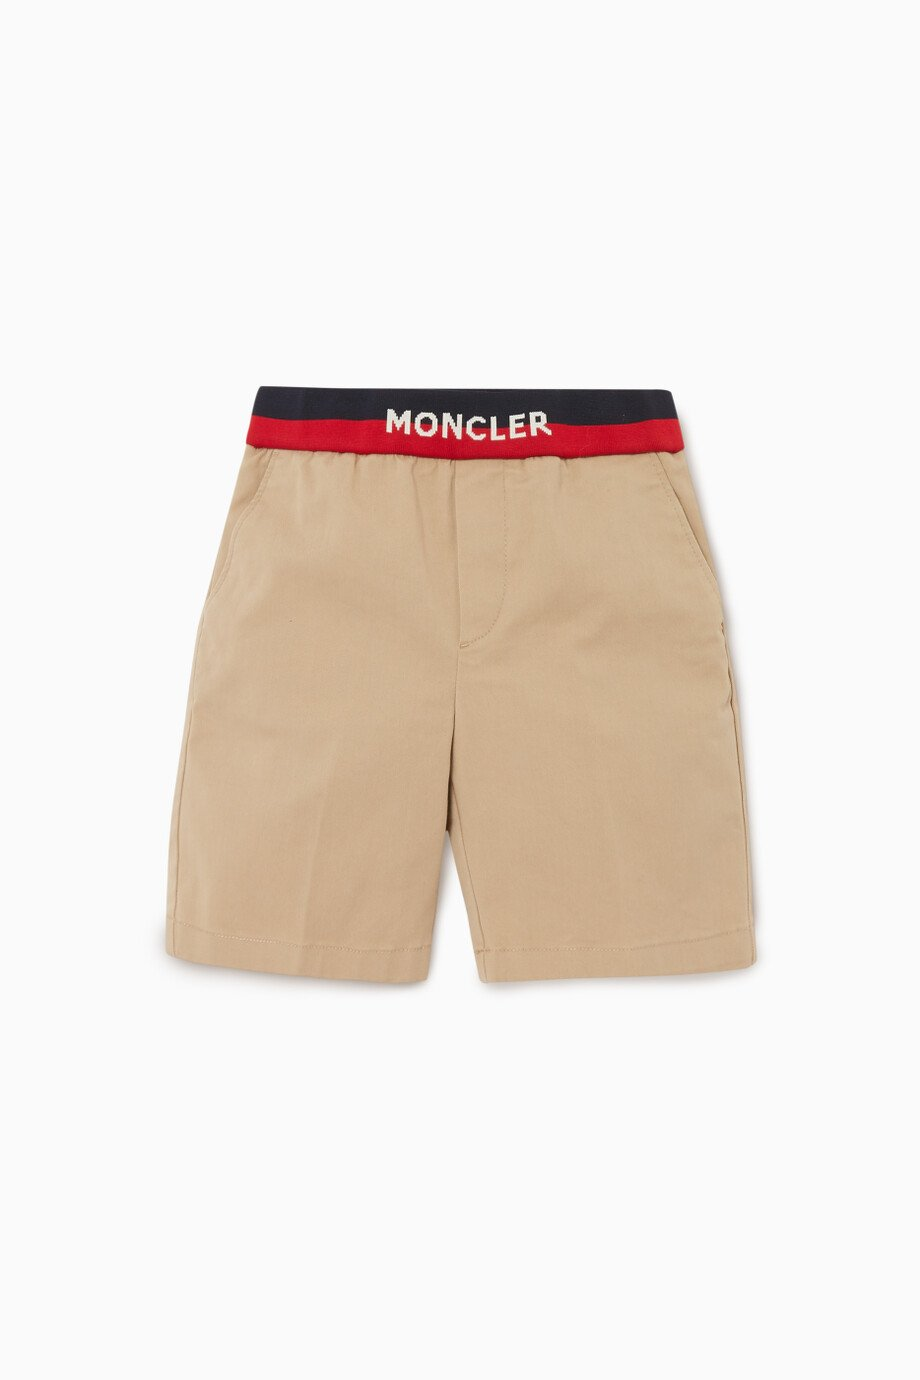 556c0fe86 Shop Moncler Neutral Logo Waistband Shorts for Kids | Ounass